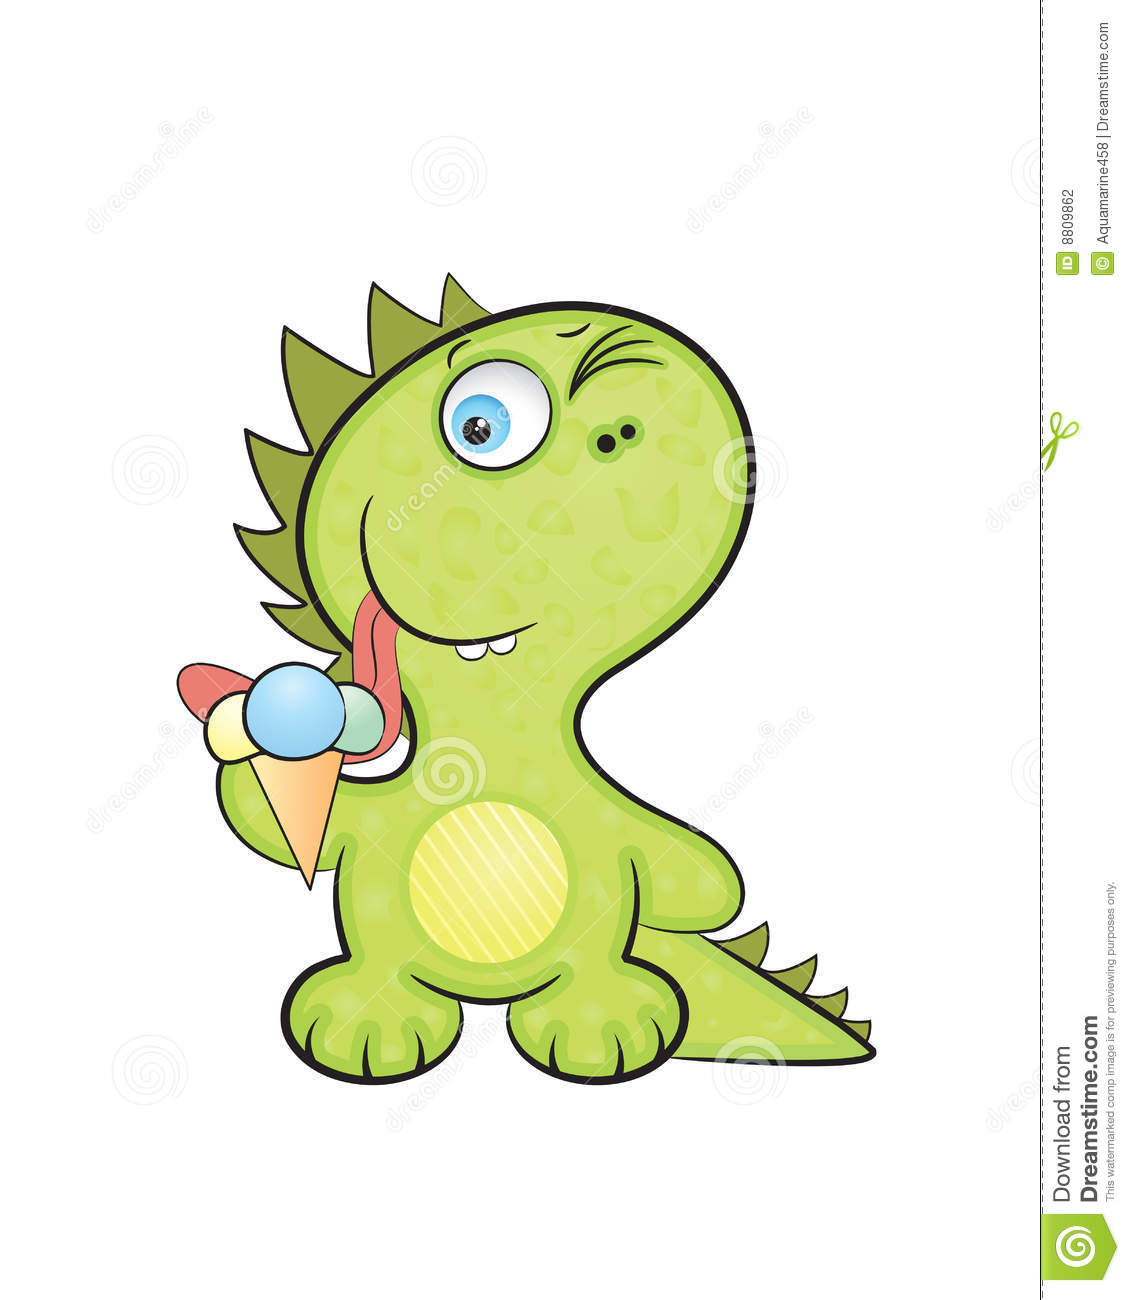 Dragon Baby Stock Vector. Image Of Head, Painted, Ornate